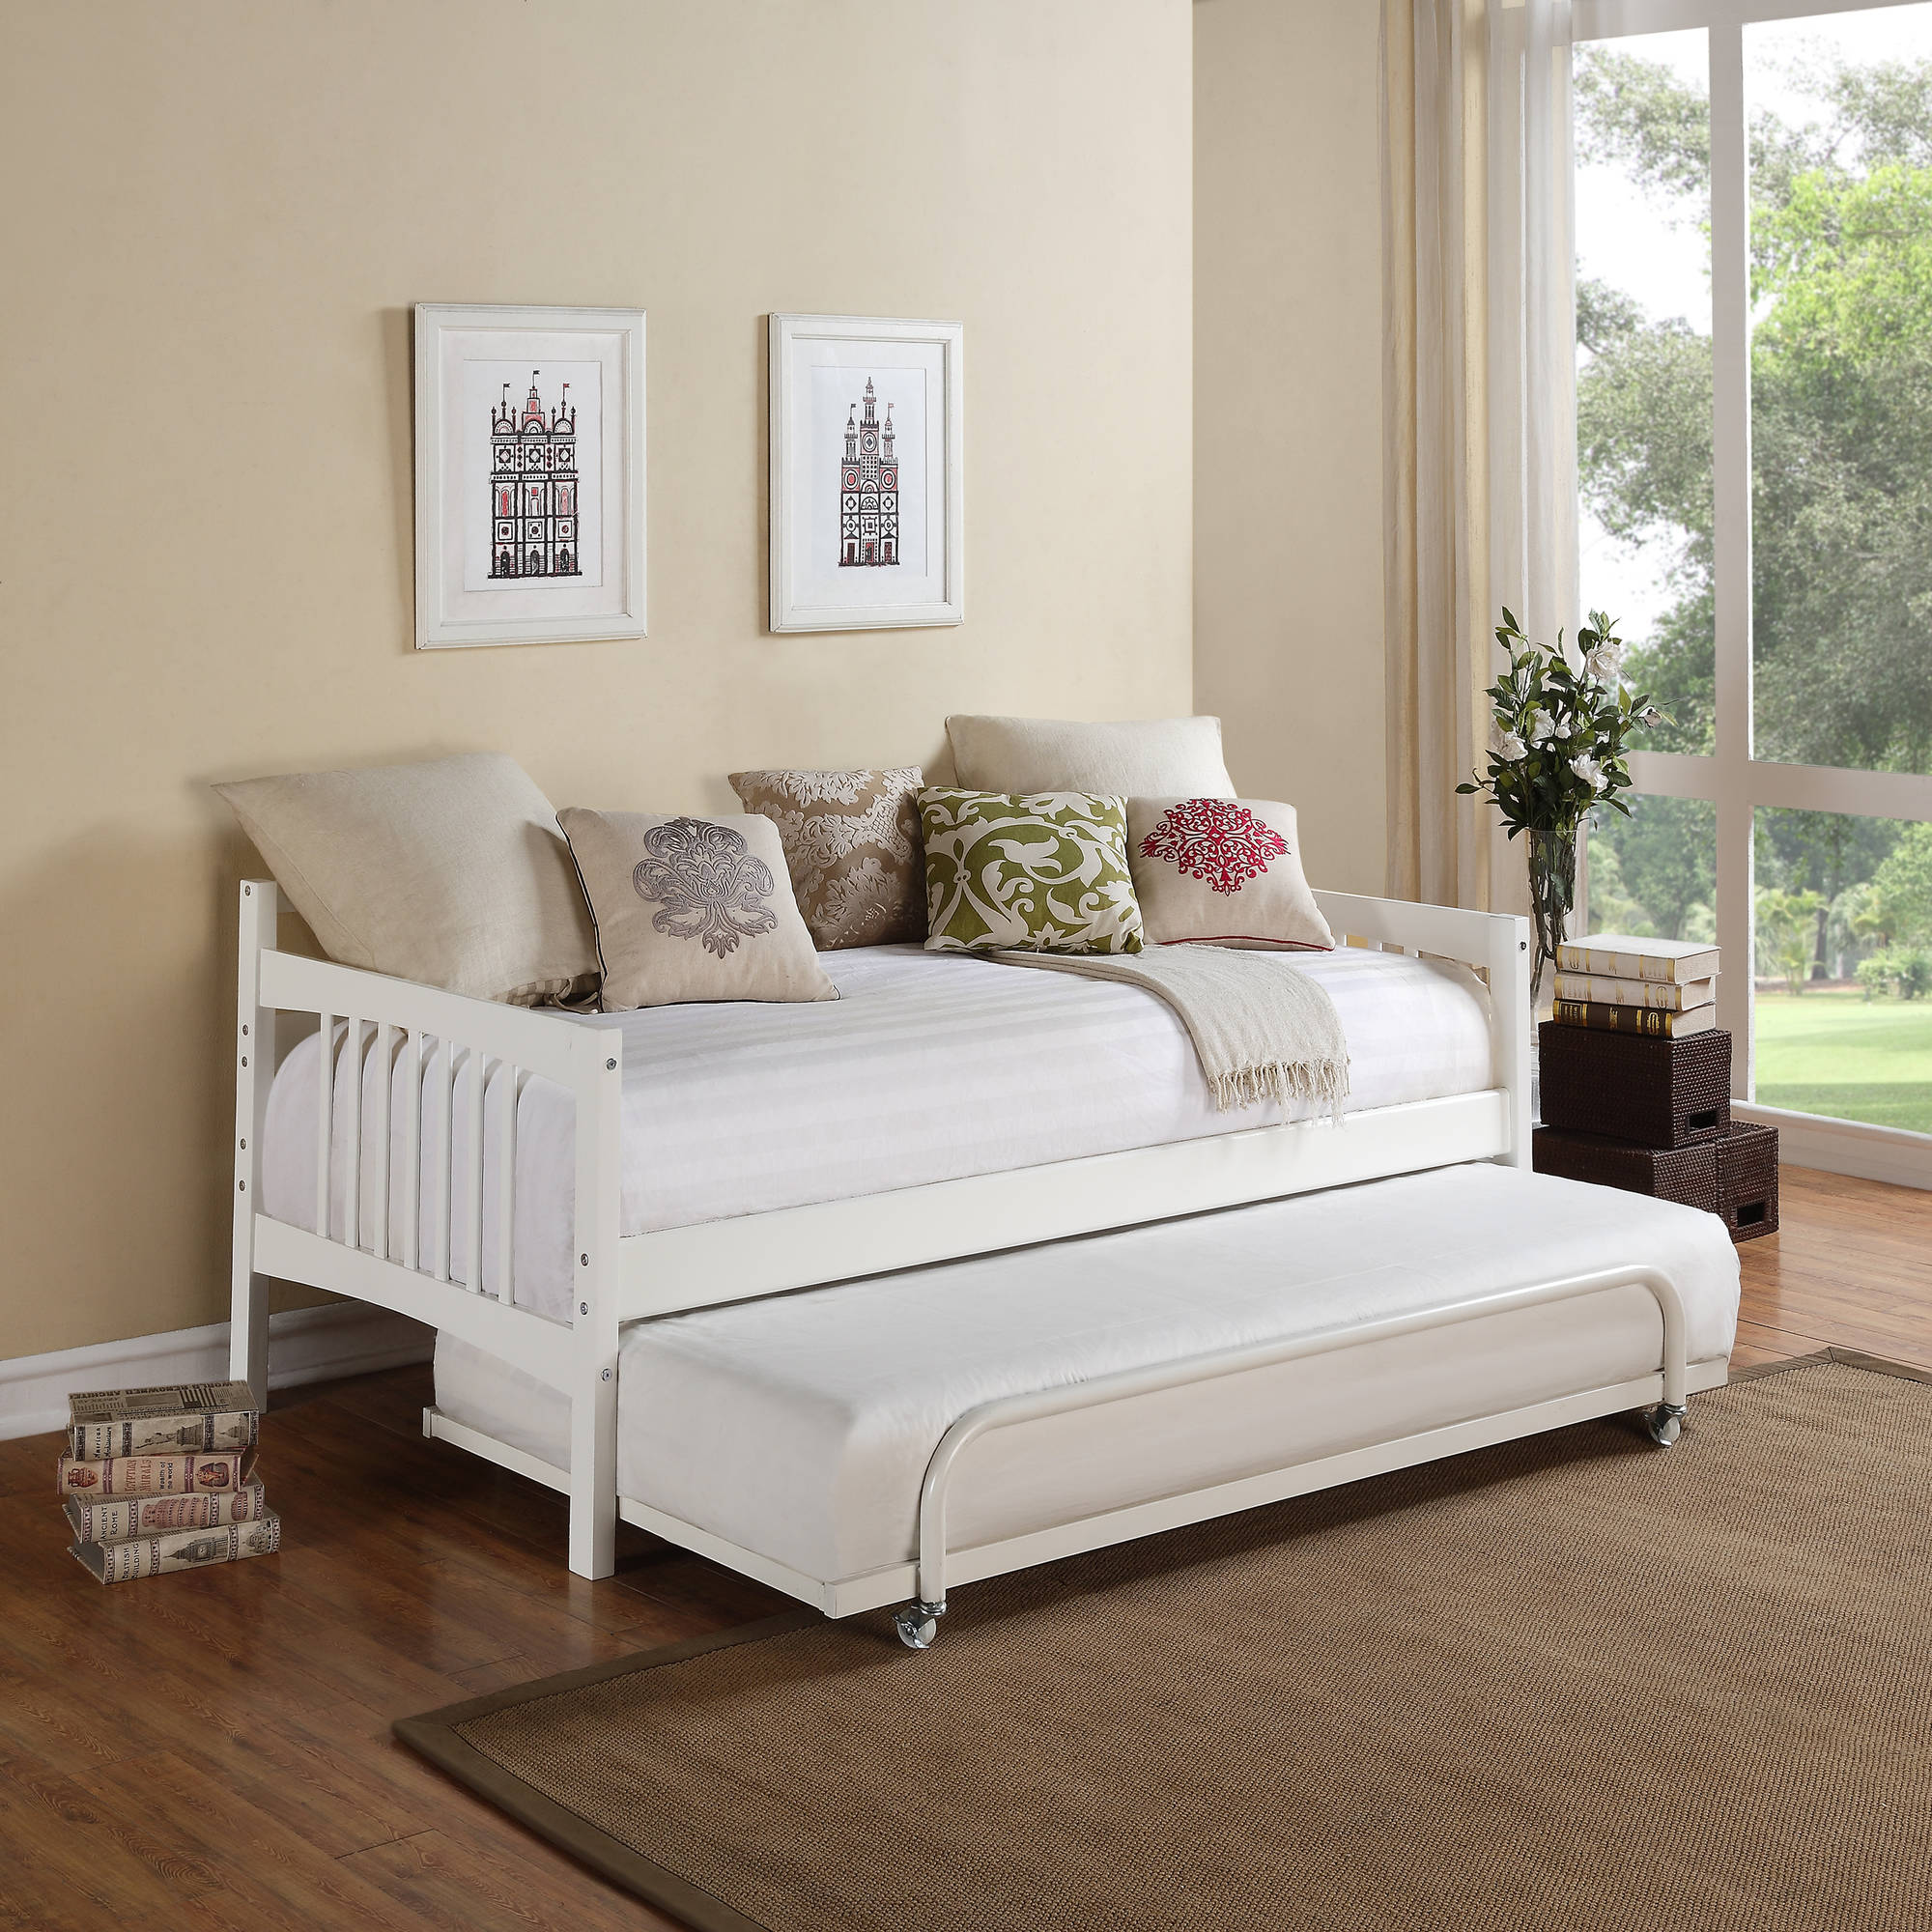 Stunning day beds dorel living kayden wood twin daybed, multiple colors ytopooh